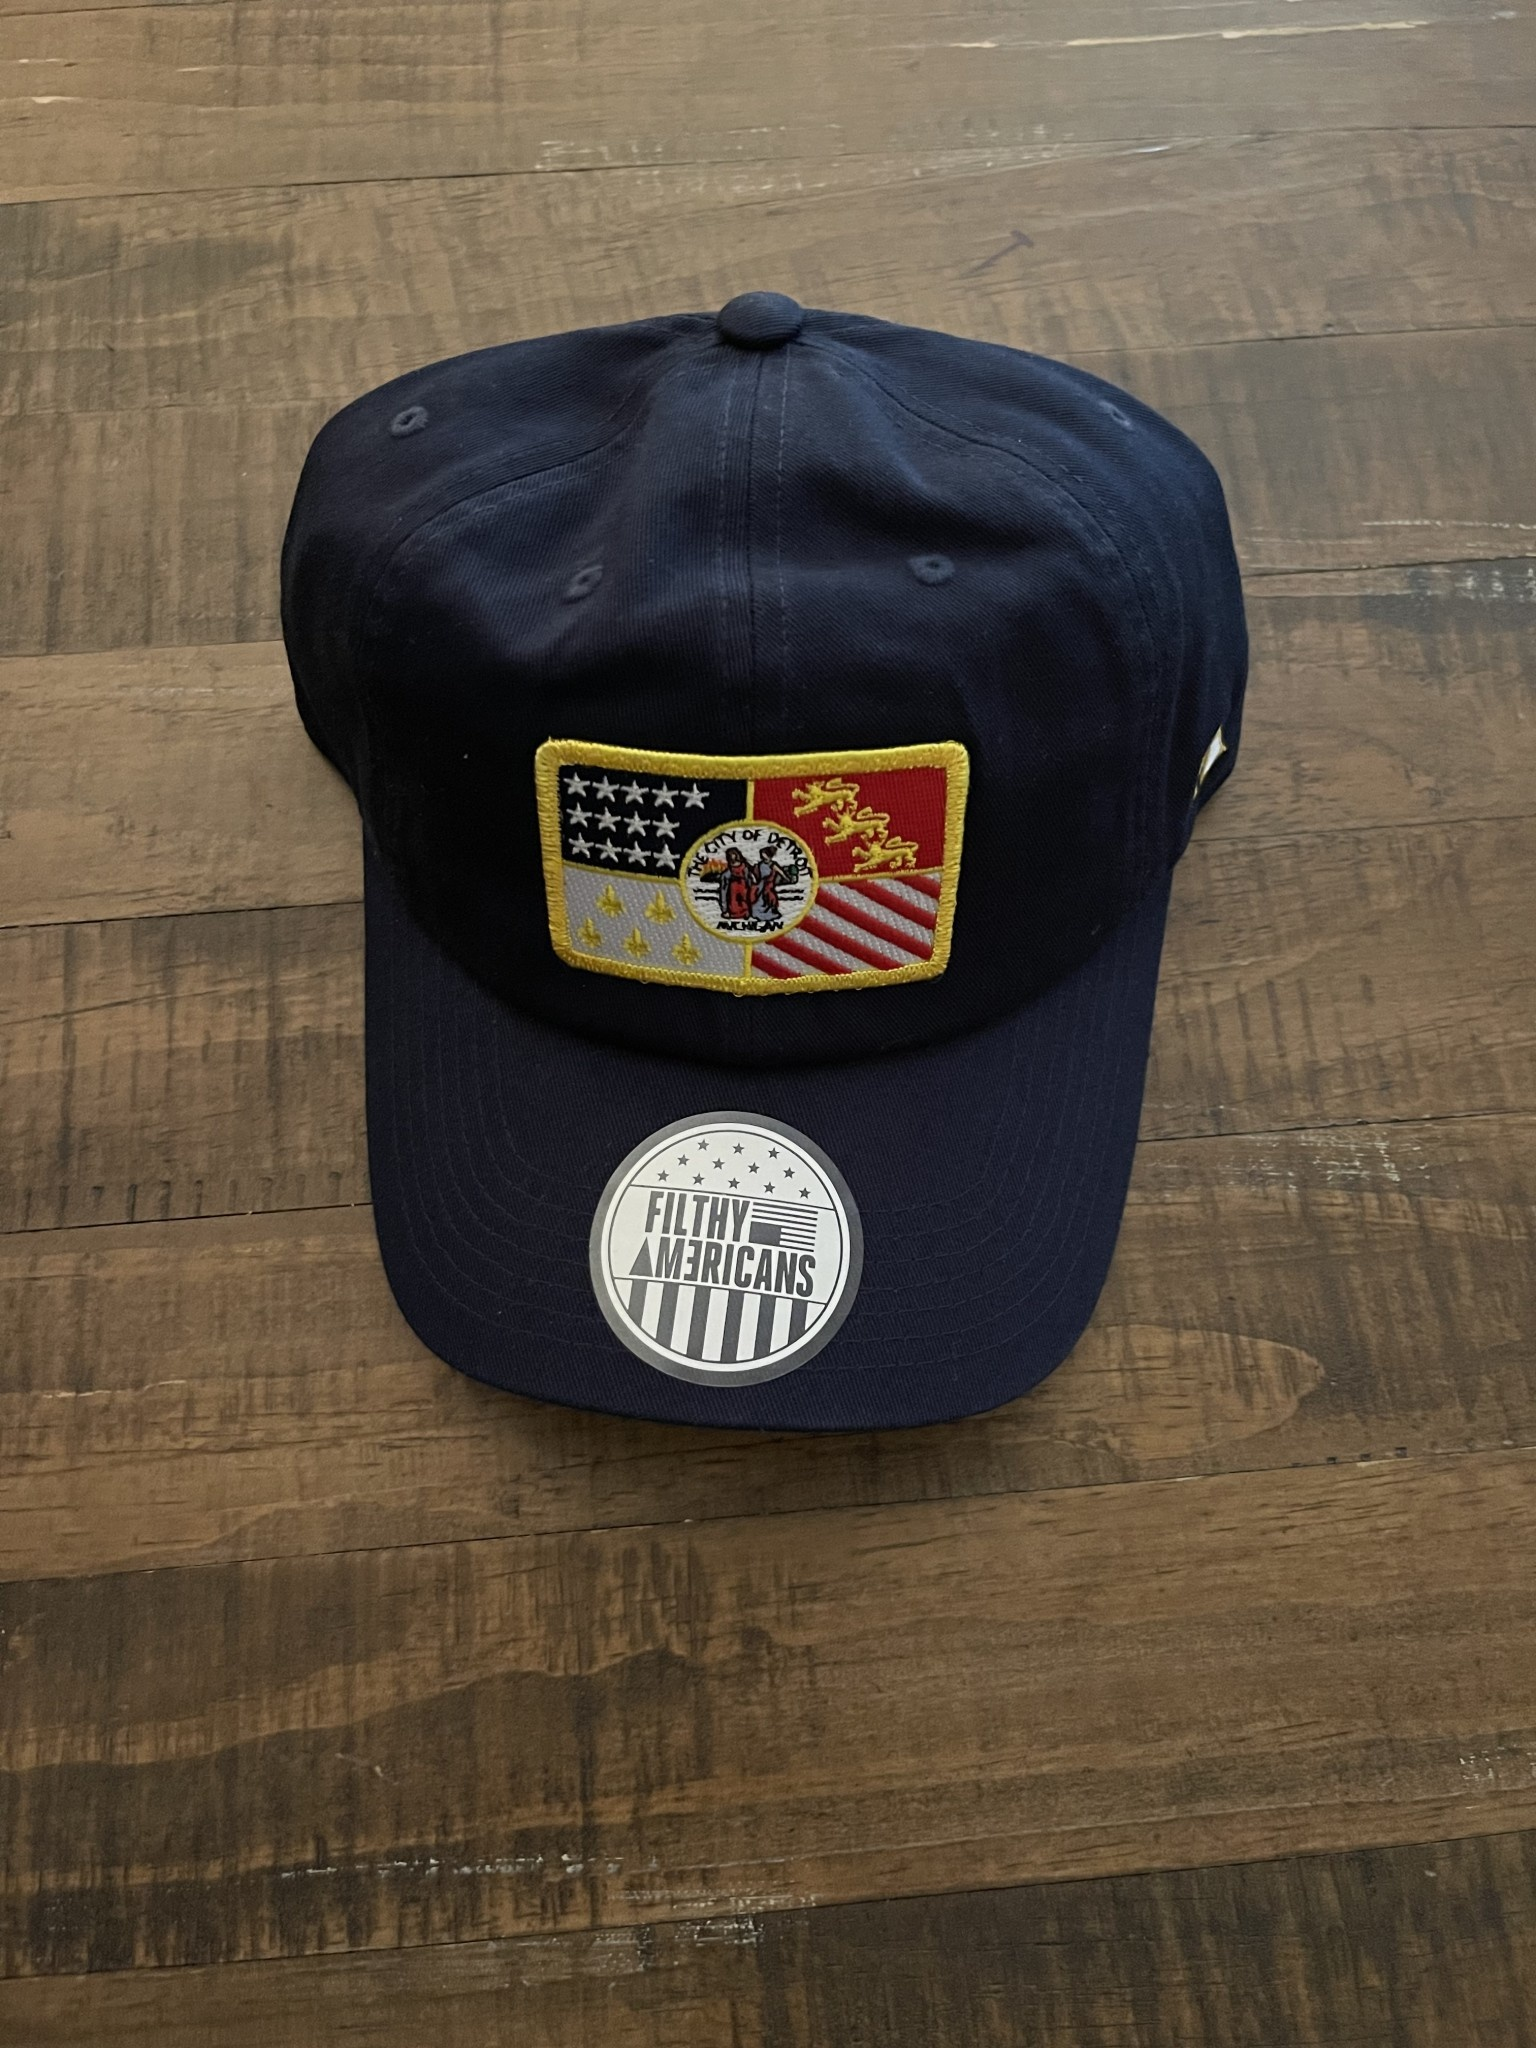 NAVY AND FLAG DAD HAT